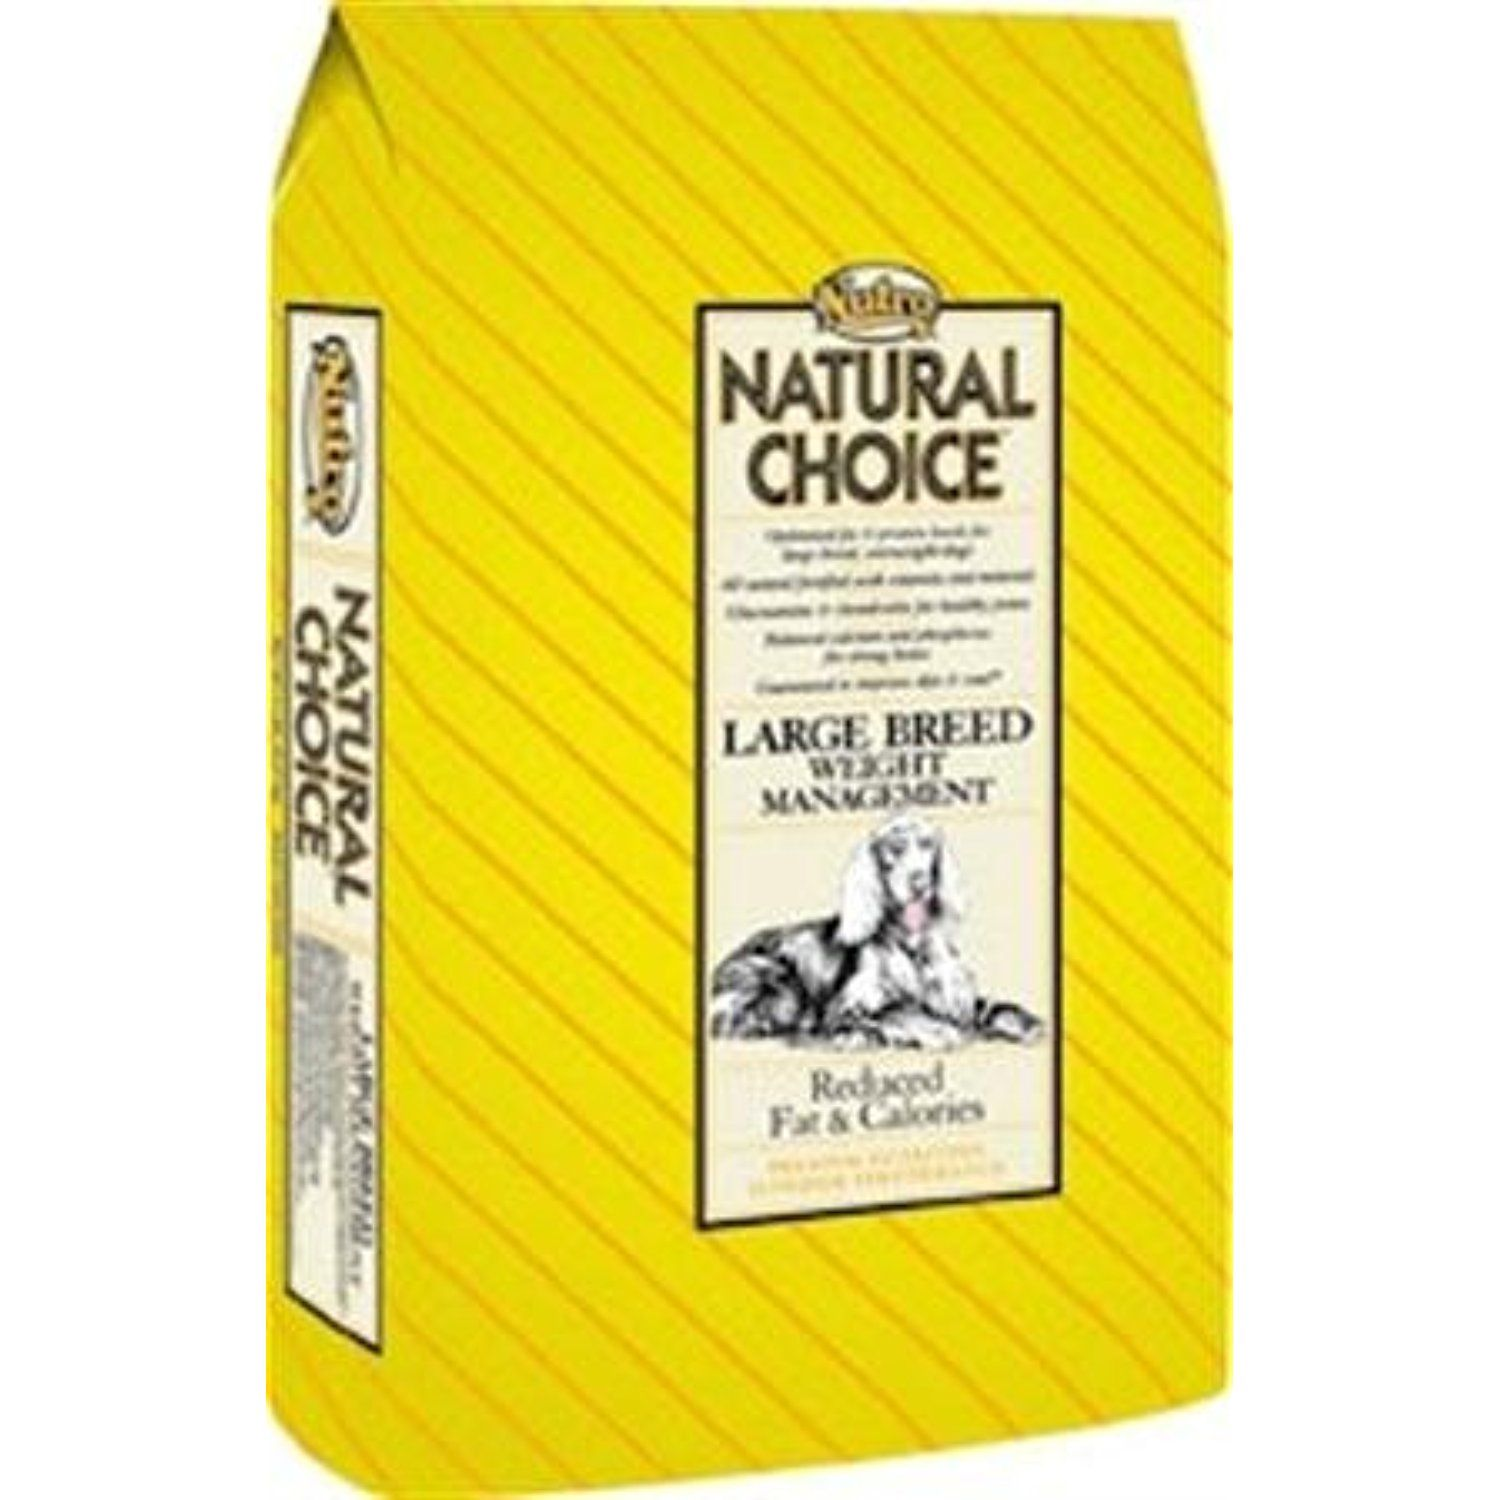 Nutro natural choice dry dog food large breed weight